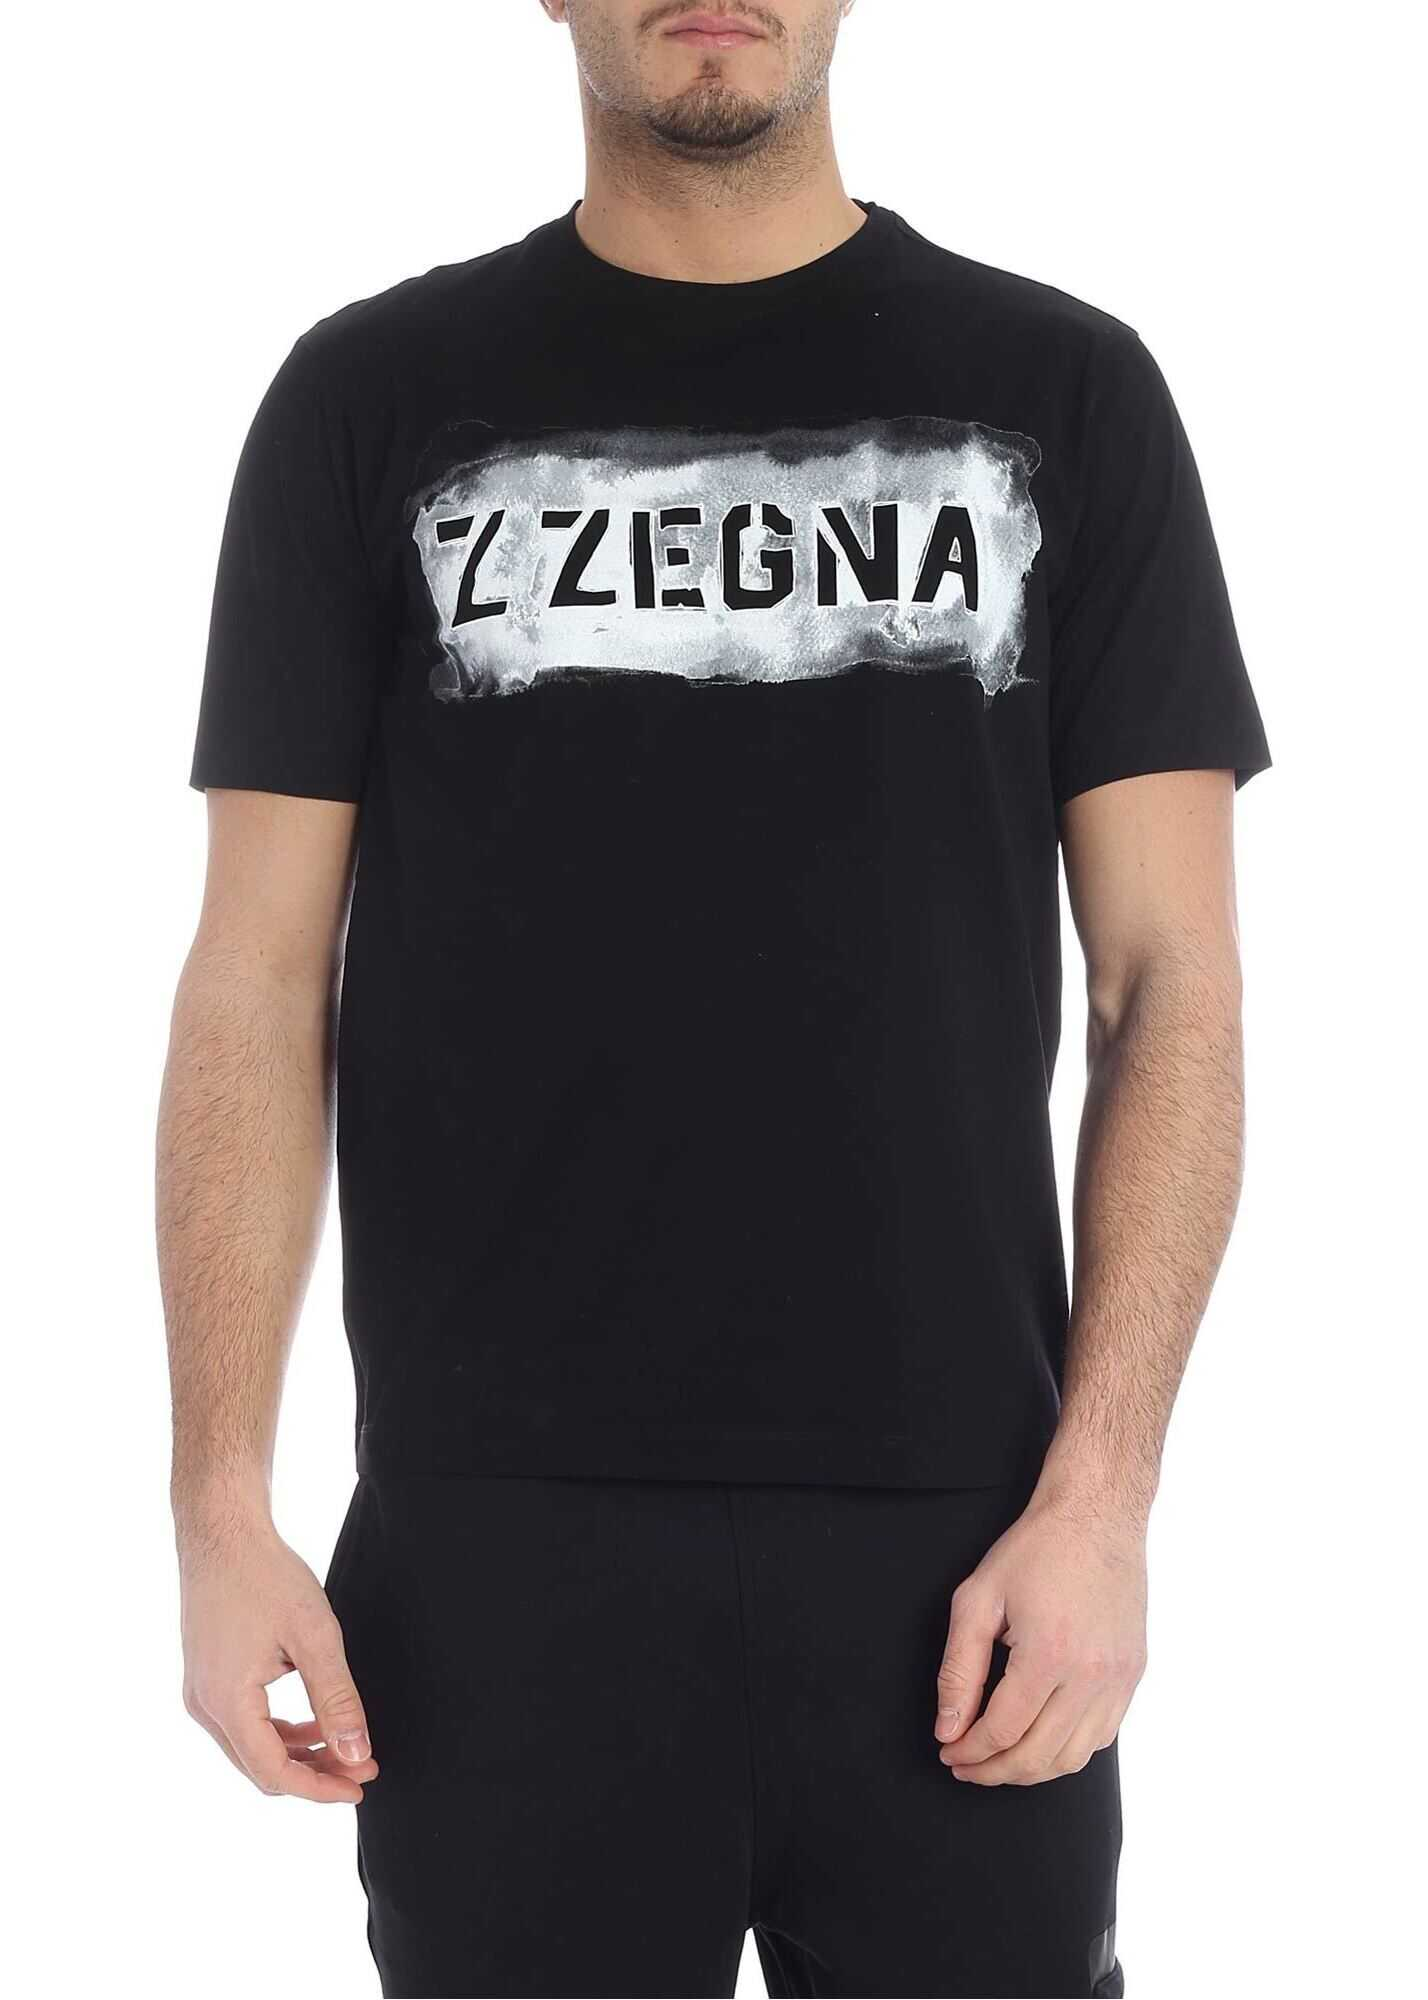 Black T-Shirt With Zzegna Logo